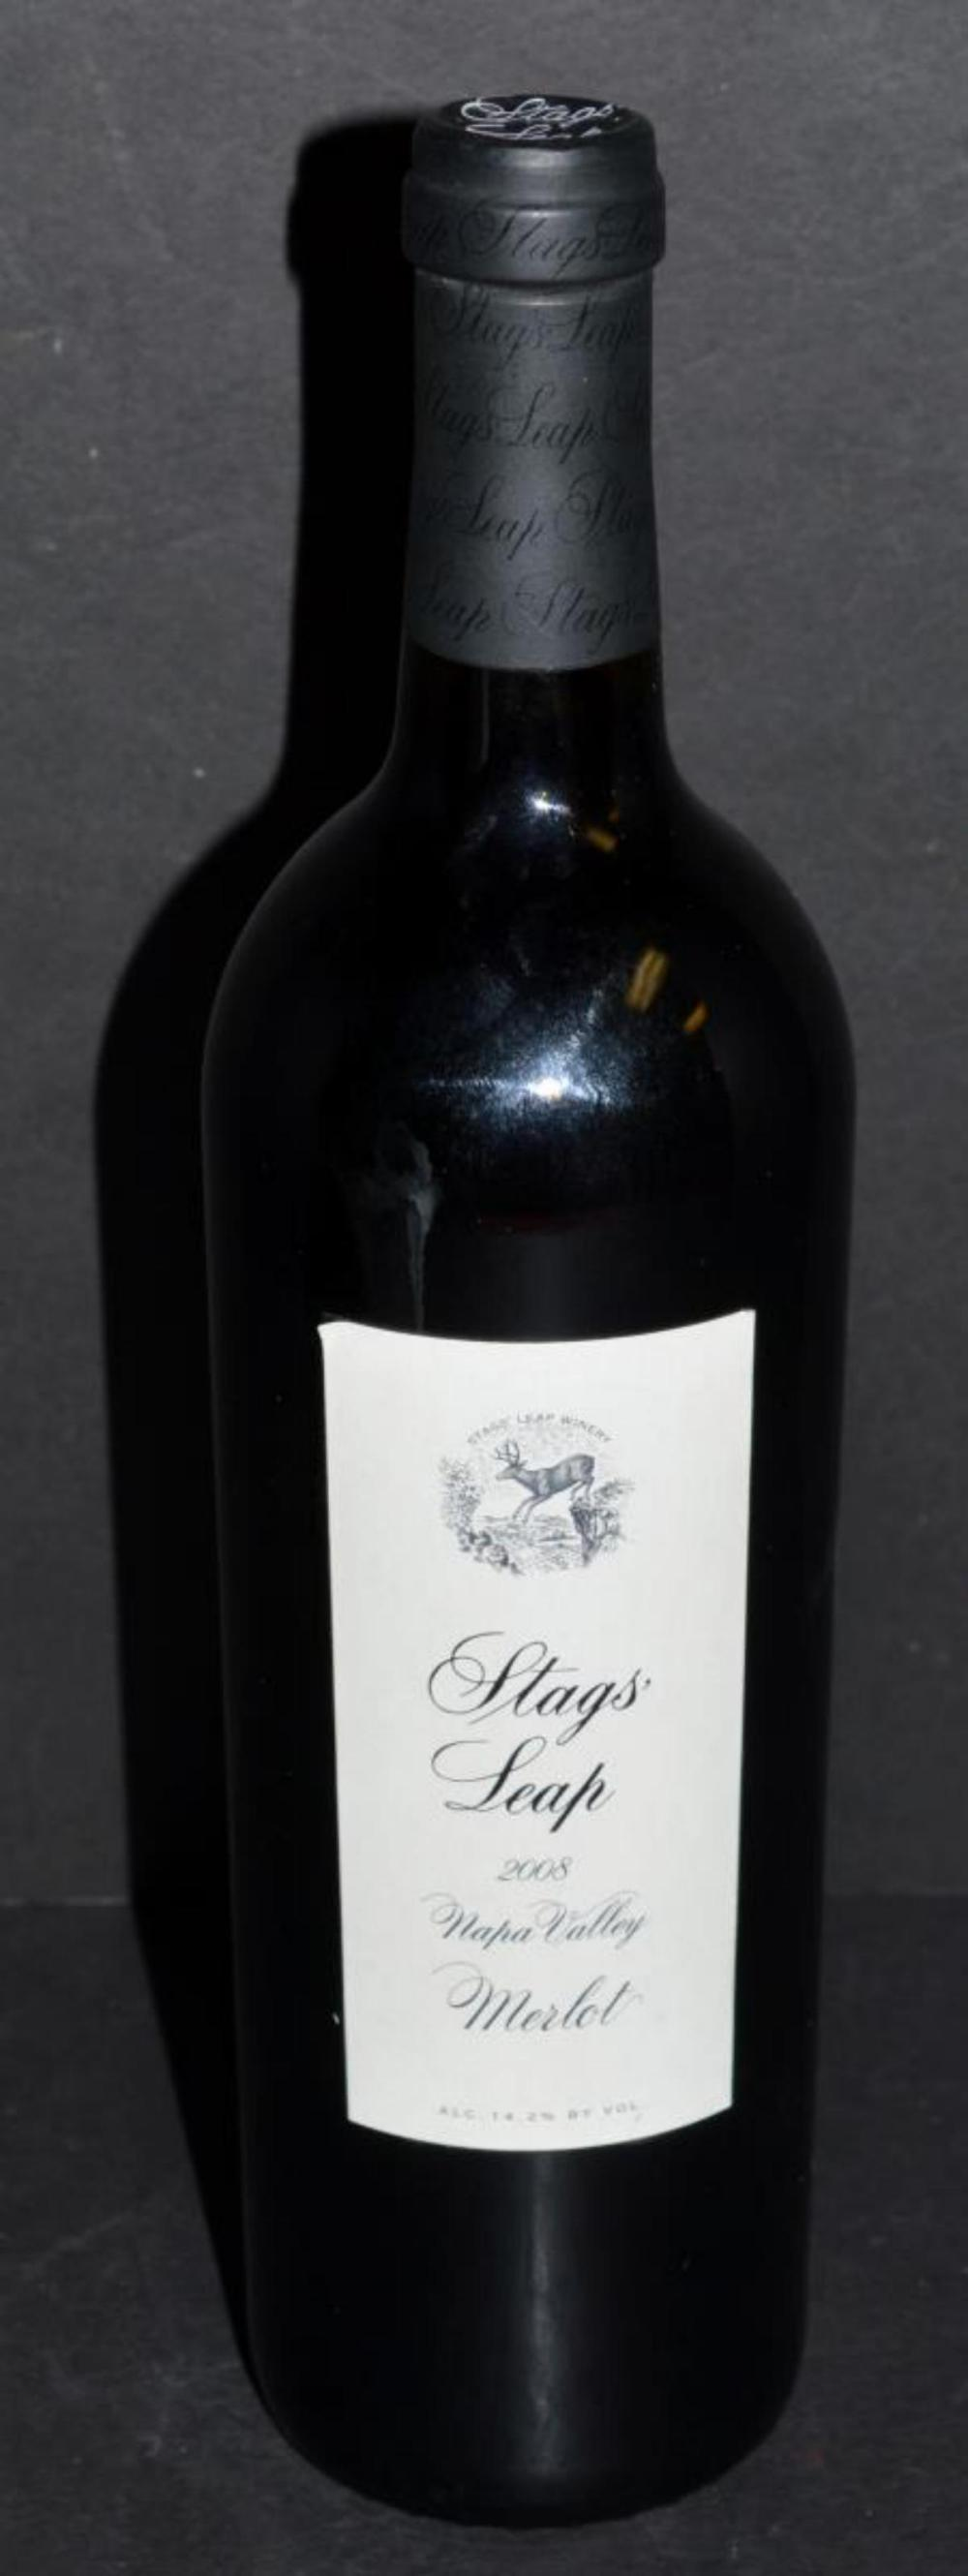 Stags' Leap 2008 Napa Valley Merlot Wine